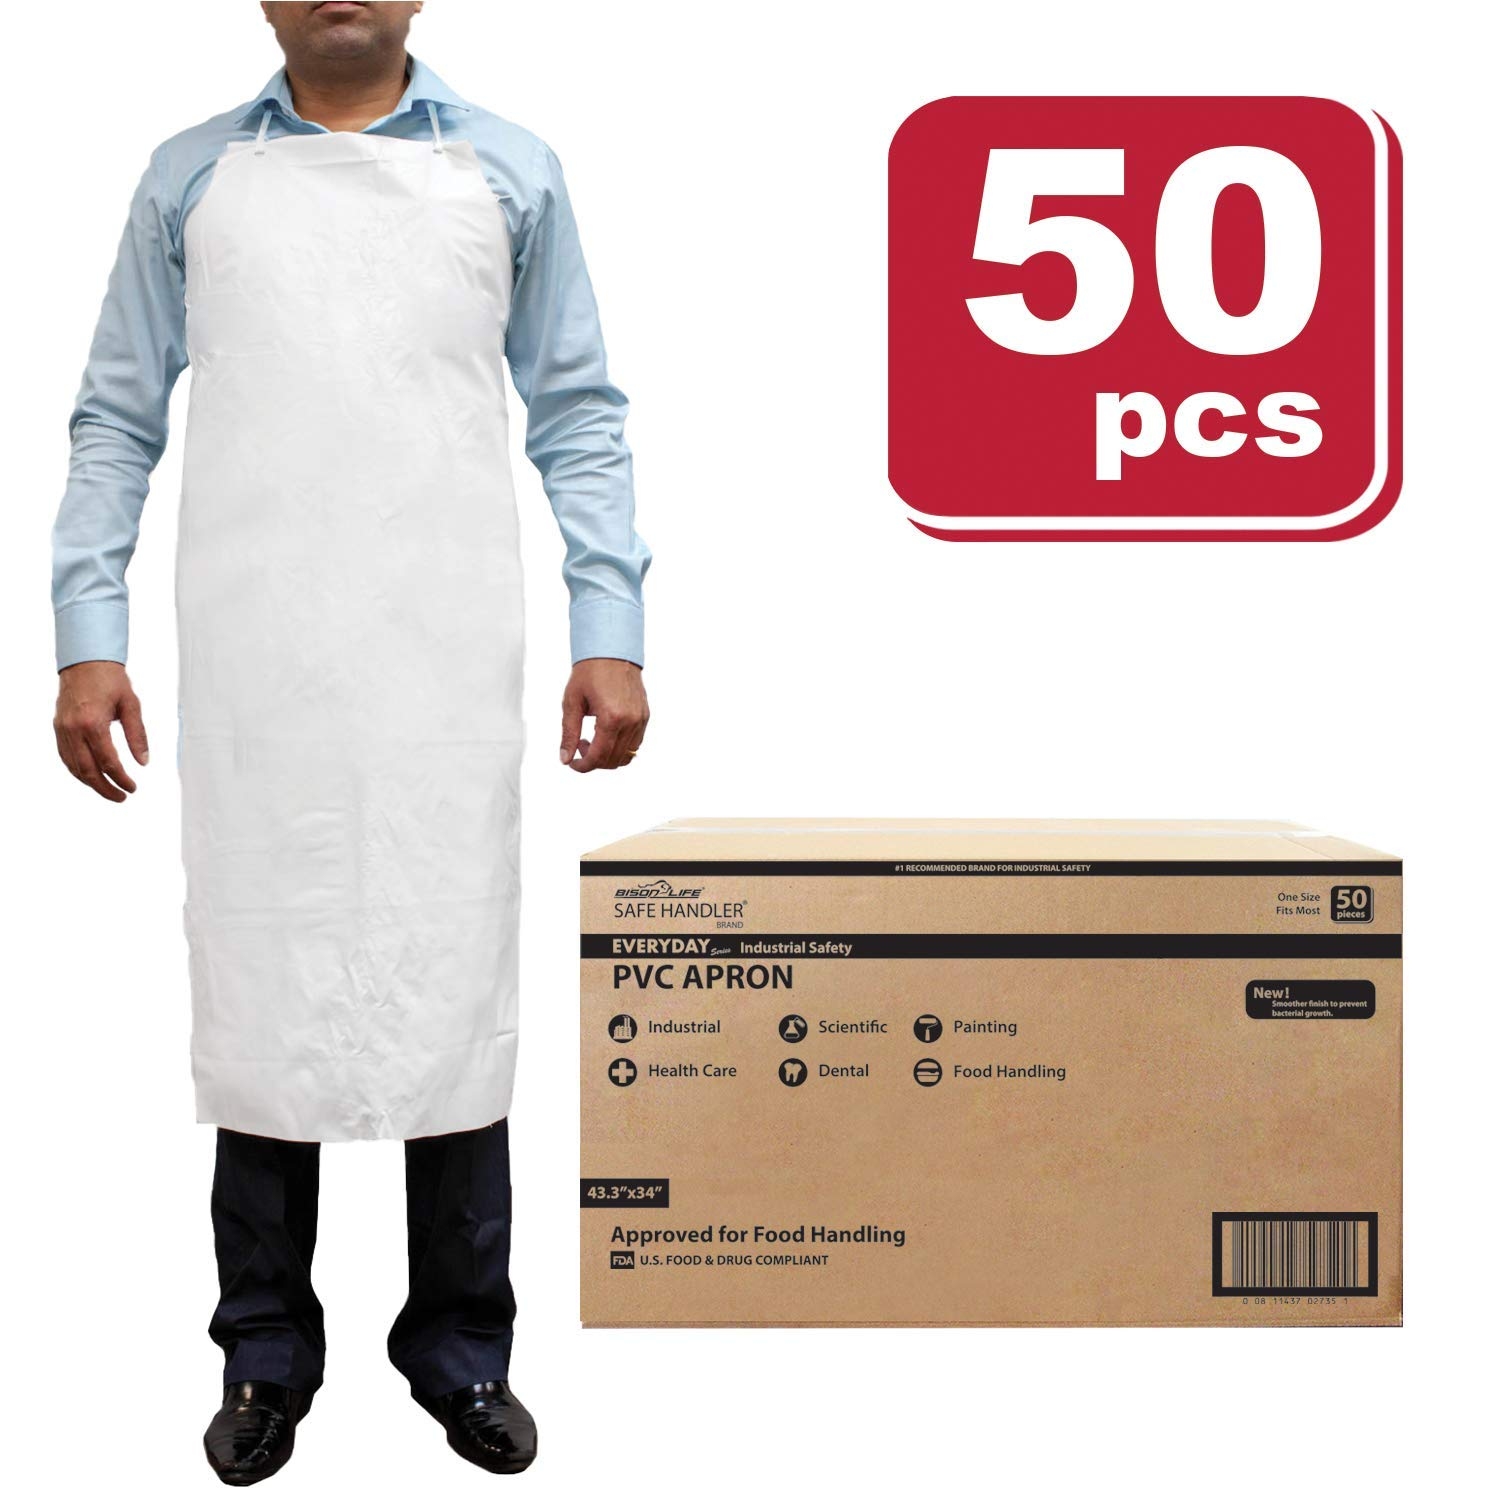 SAFE HANDLER PVC Apron | Smooth finish to Prevent Bacterial Growth, Comfortable, Easily Adjustable, Waterproof Material, WHITE (Case of 50)